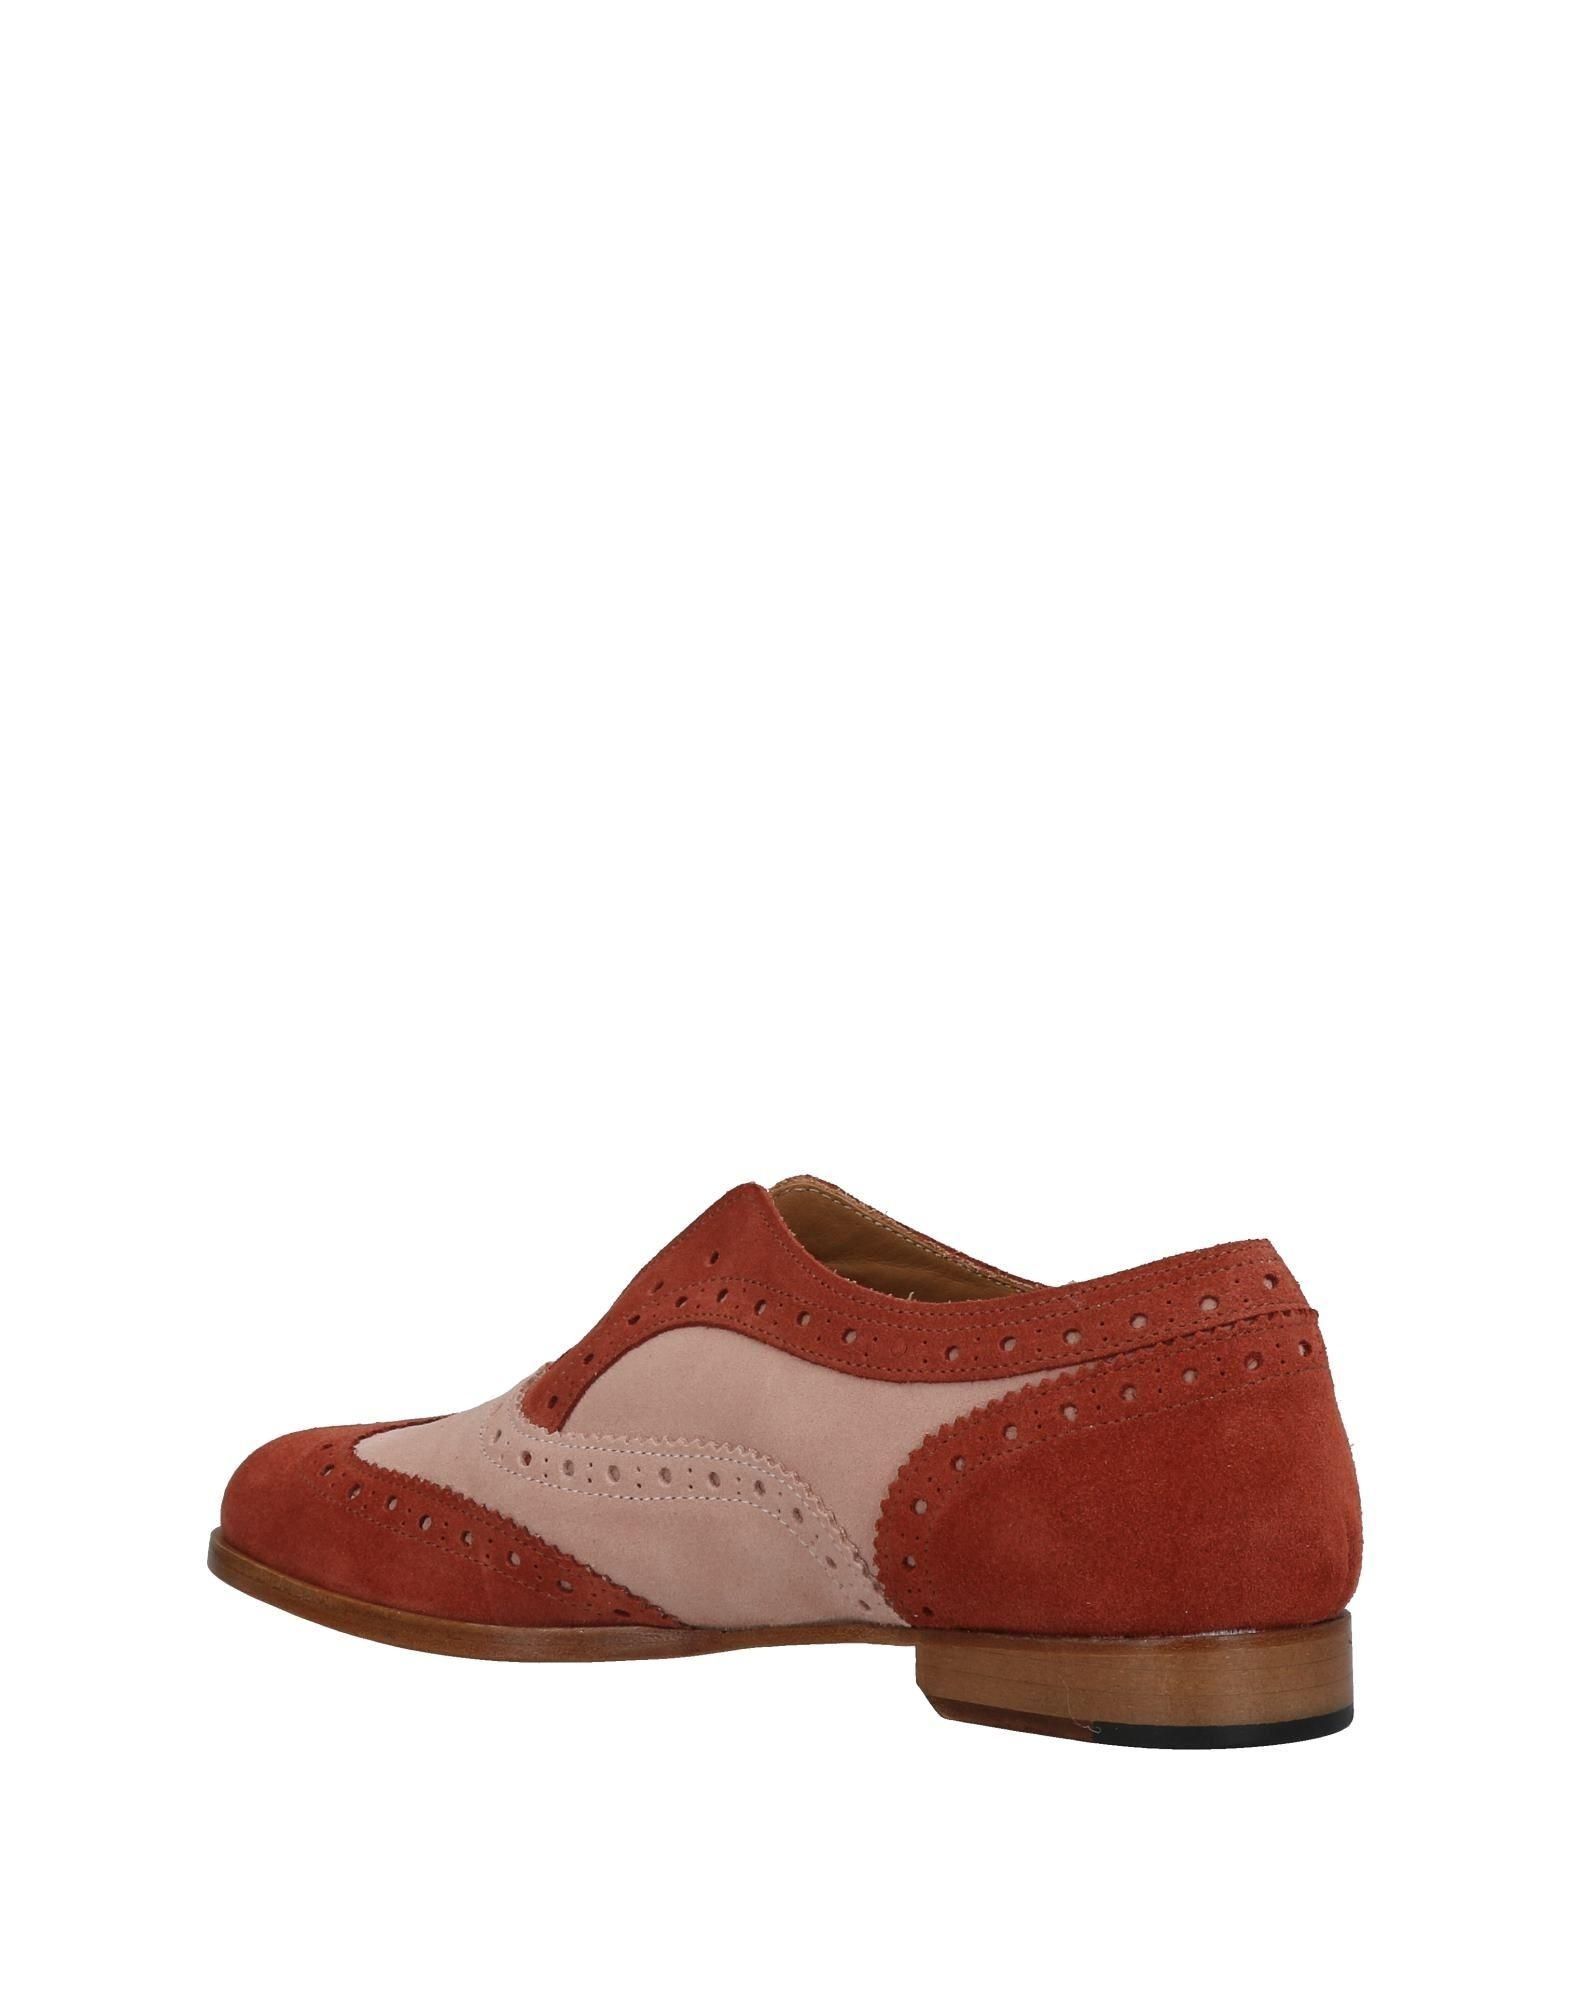 L'f Shoes Suede Loafers for Men